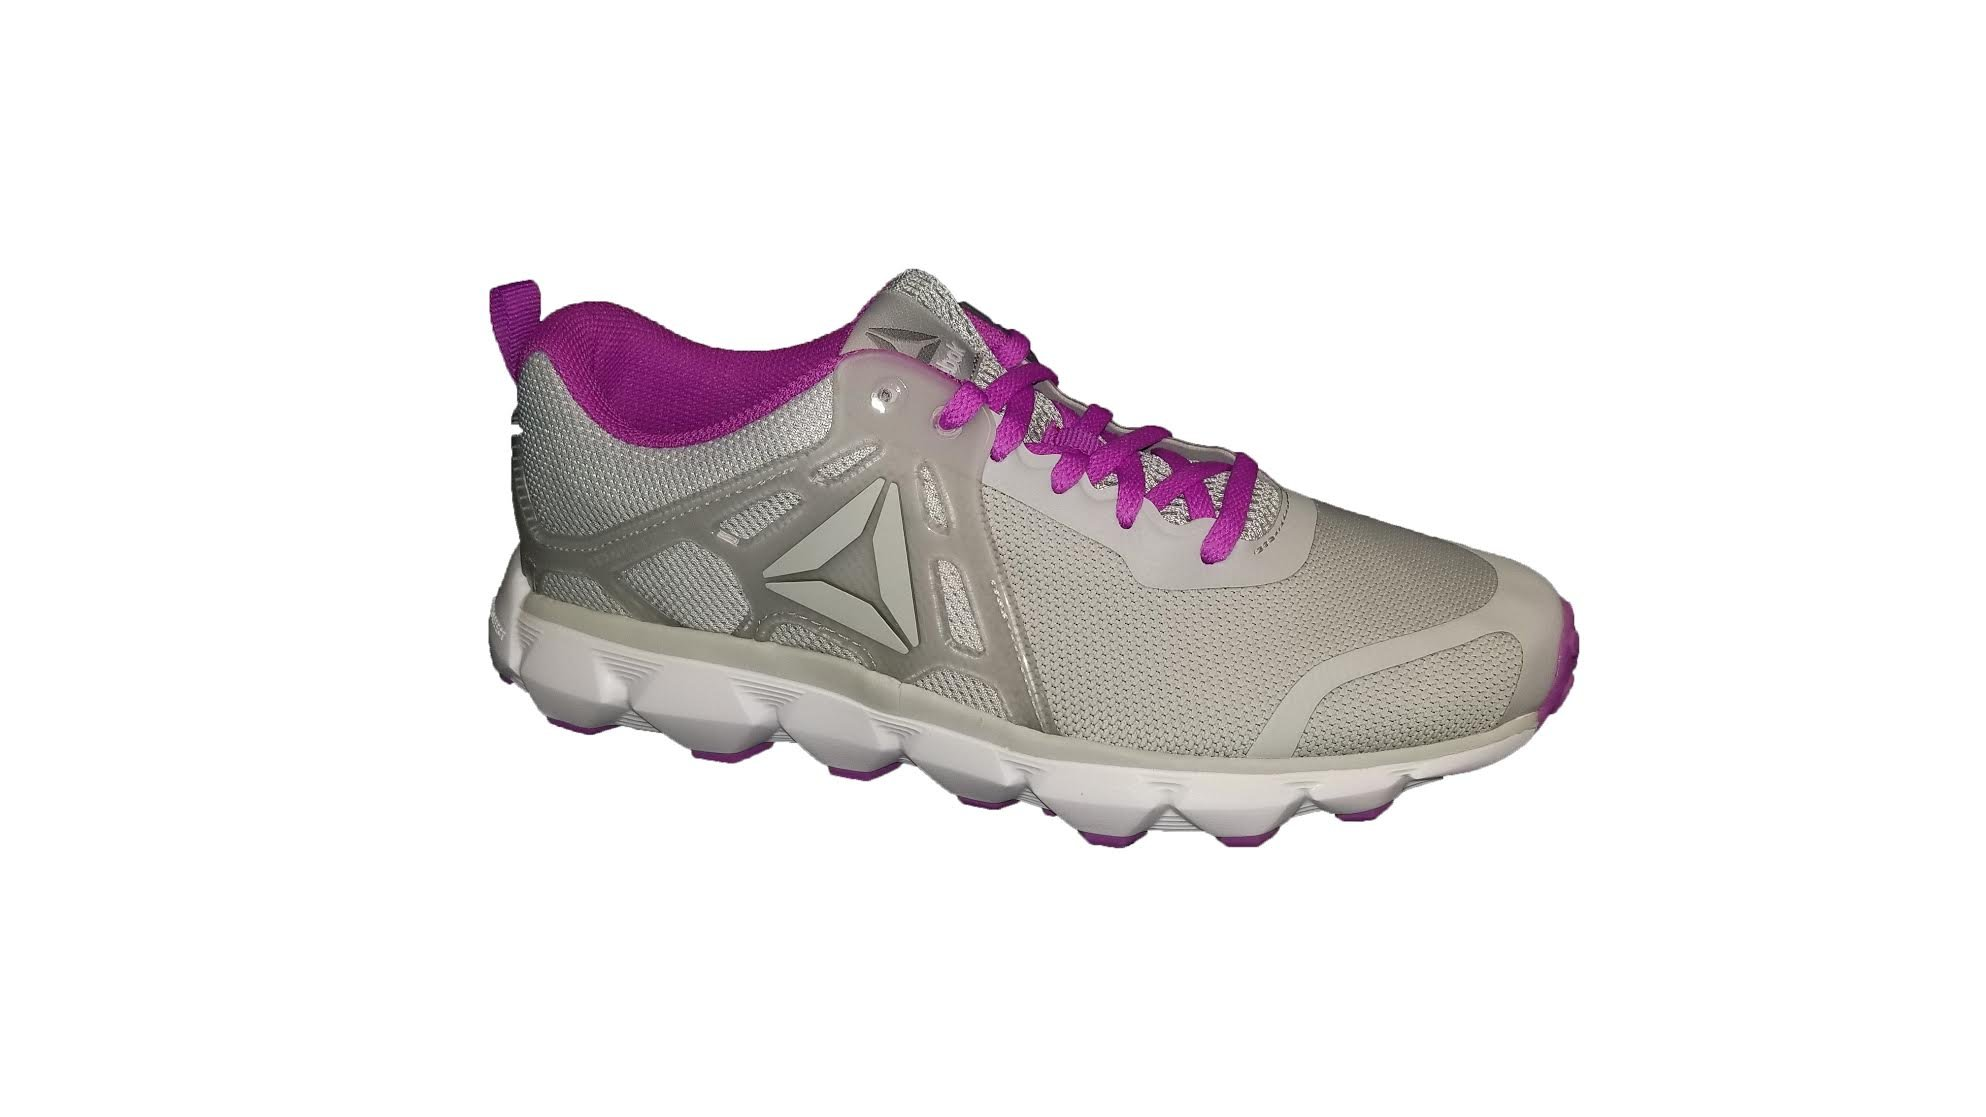 On Clearance most popular catch Reebok Women's Hexaffect Run 5.0 MTM Track Shoe Skull Flat Grey/Vicious  Violet/Pewter/White/Alloy, 6 M US